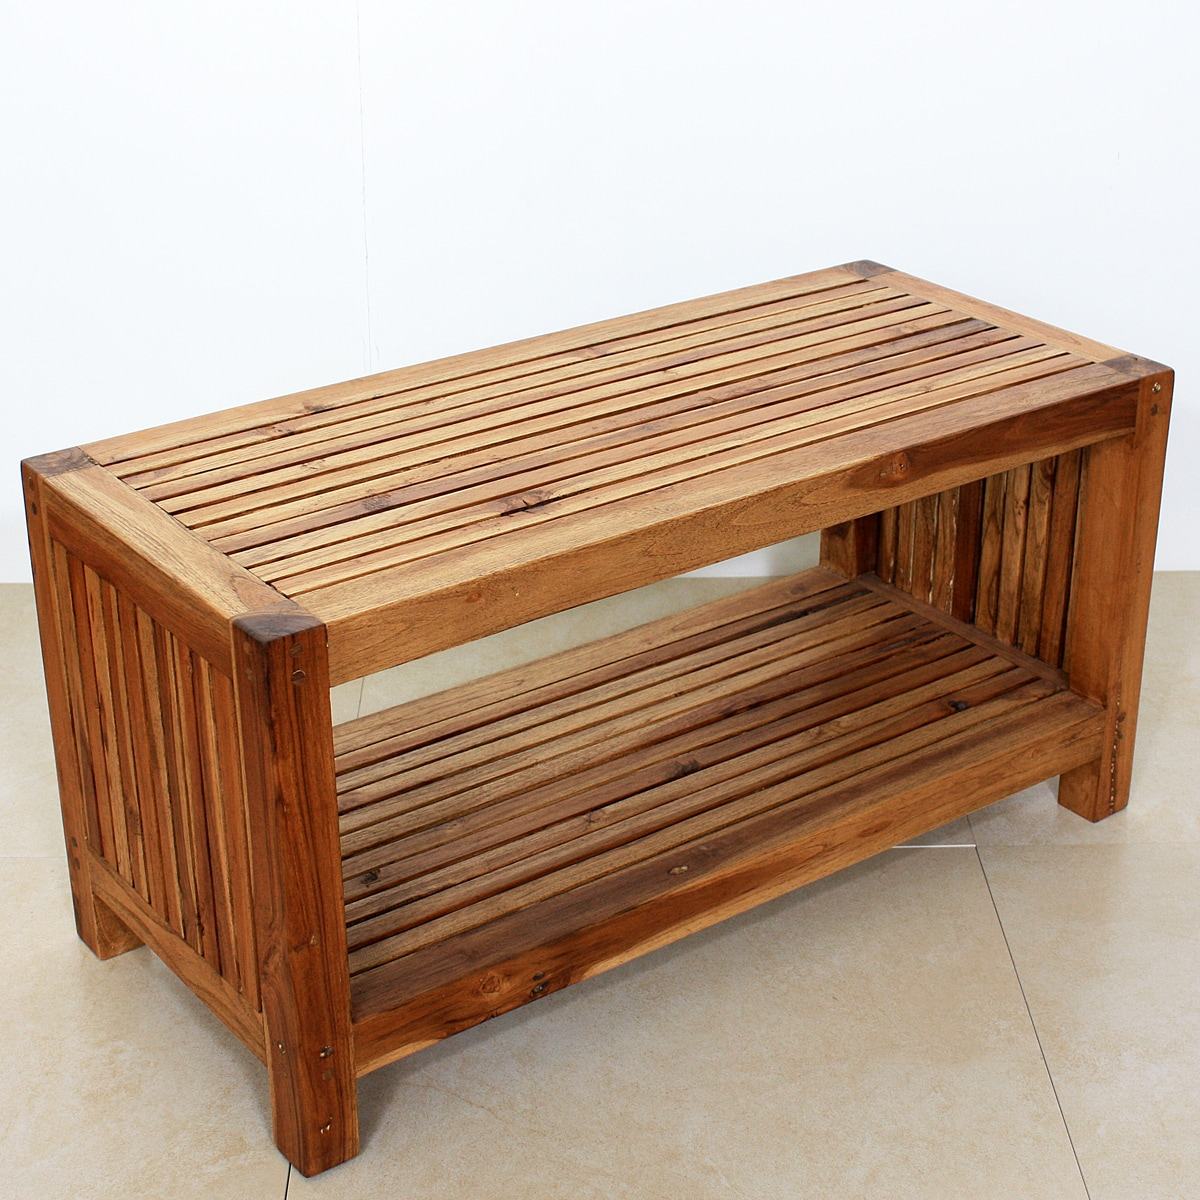 Handmade Teak Slat Coffee Table w/ Shelf (Thailand) - Free ...